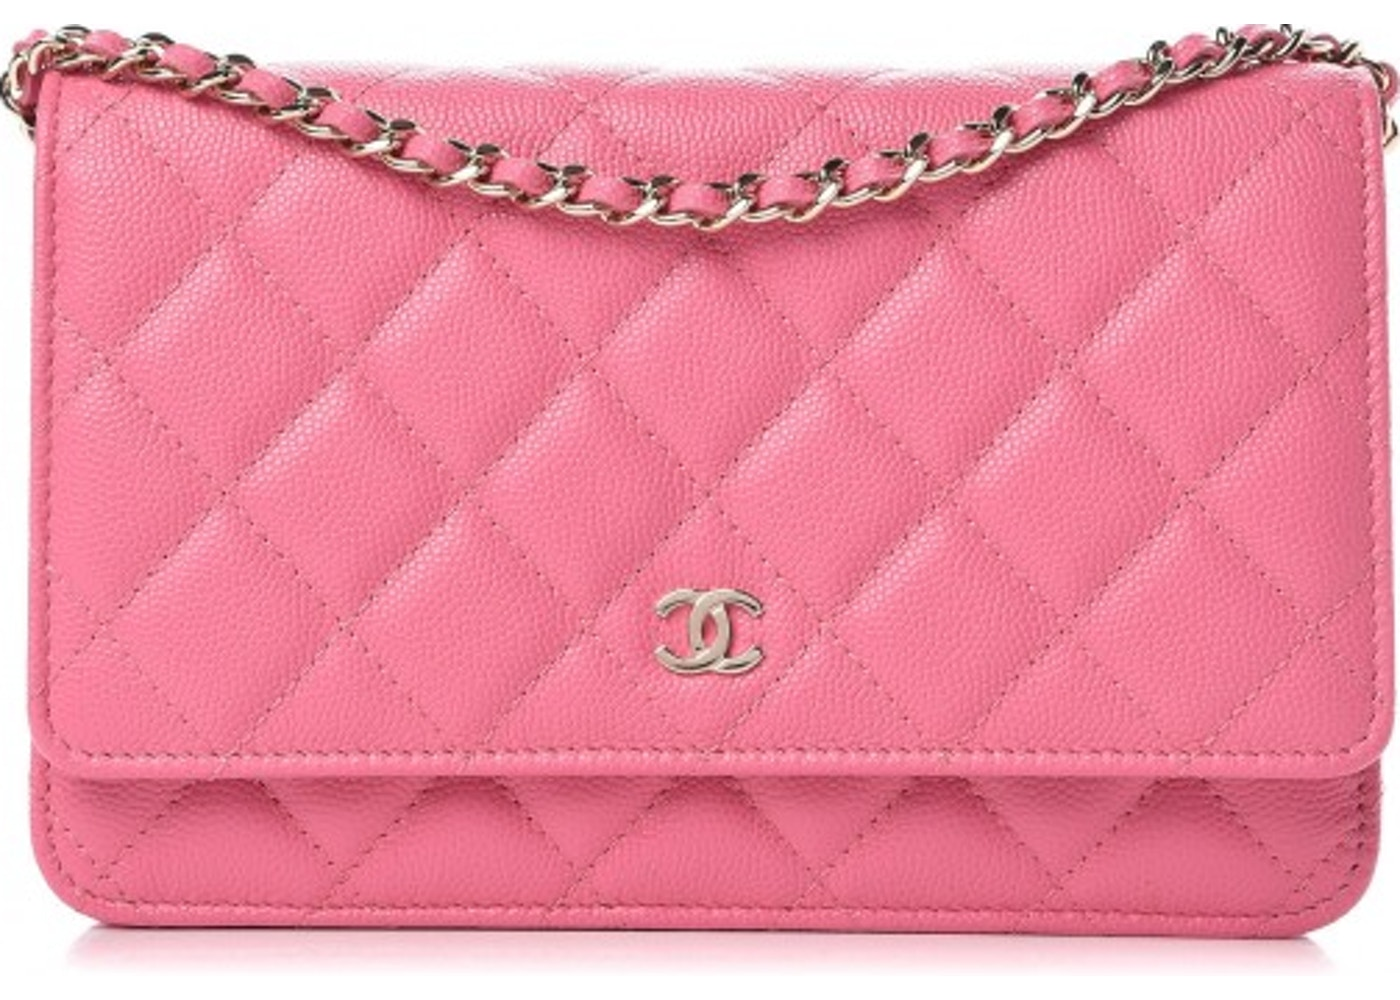 9d731e4c17 Chanel Wallet On Chain Caviar Pink. Caviar Pink